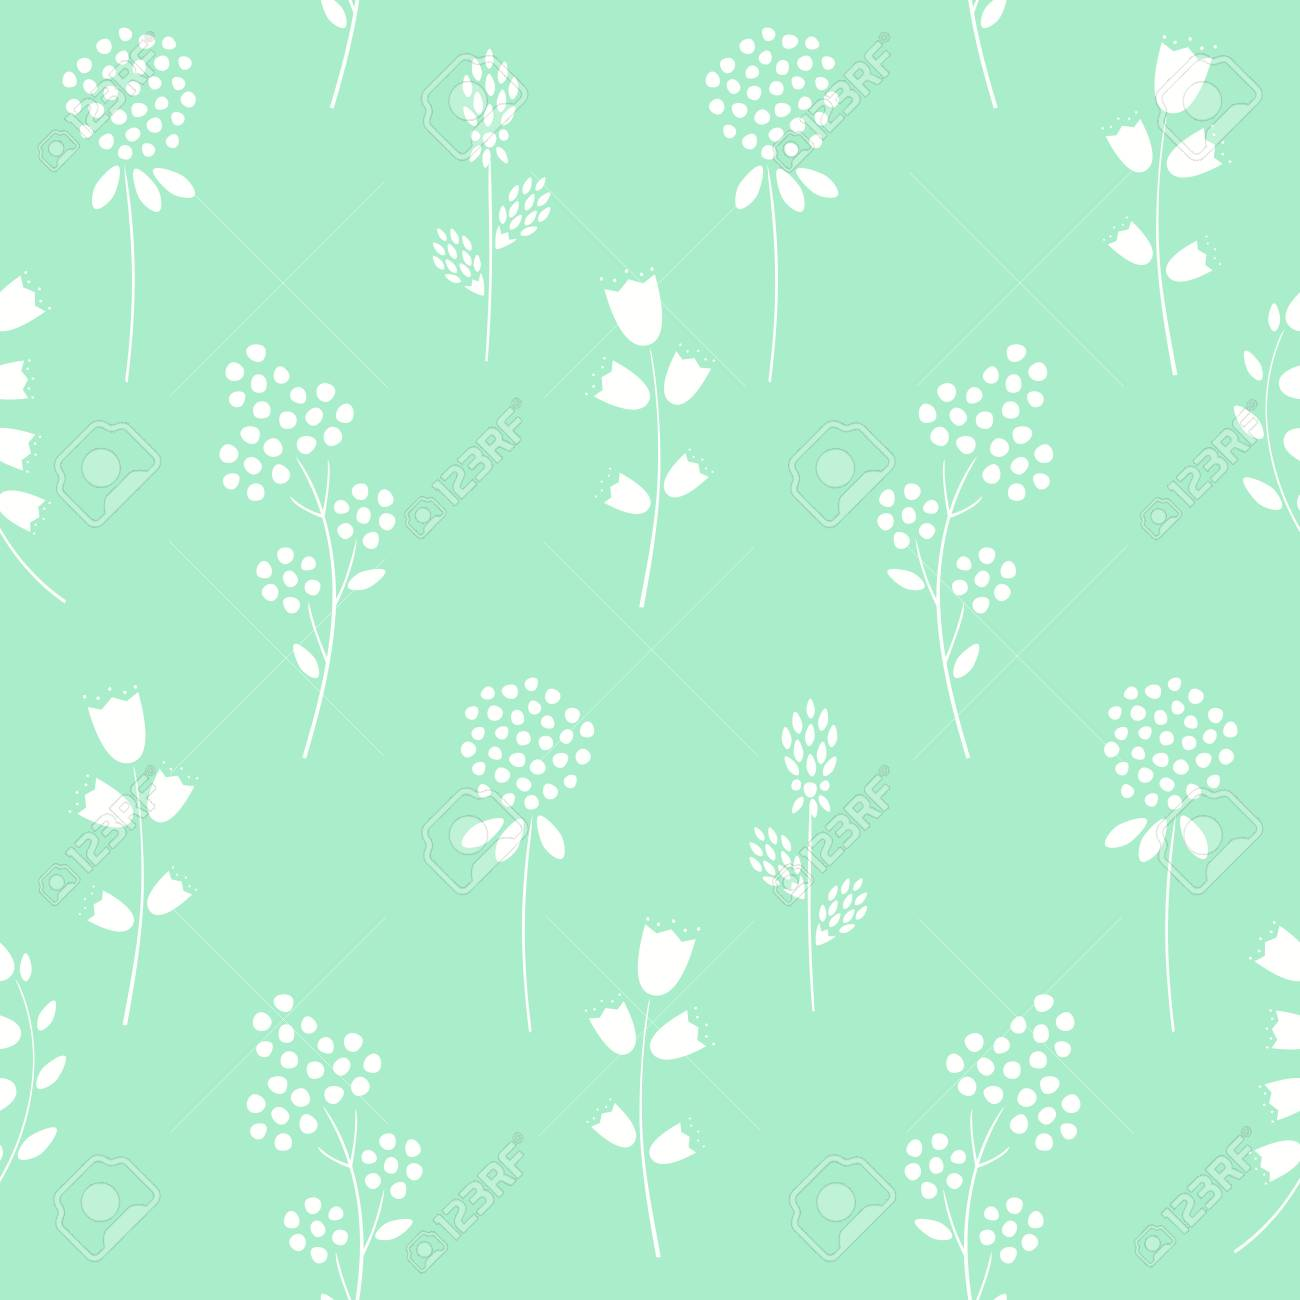 Floral Pattern On Mint Green Background Royalty Free Cliparts